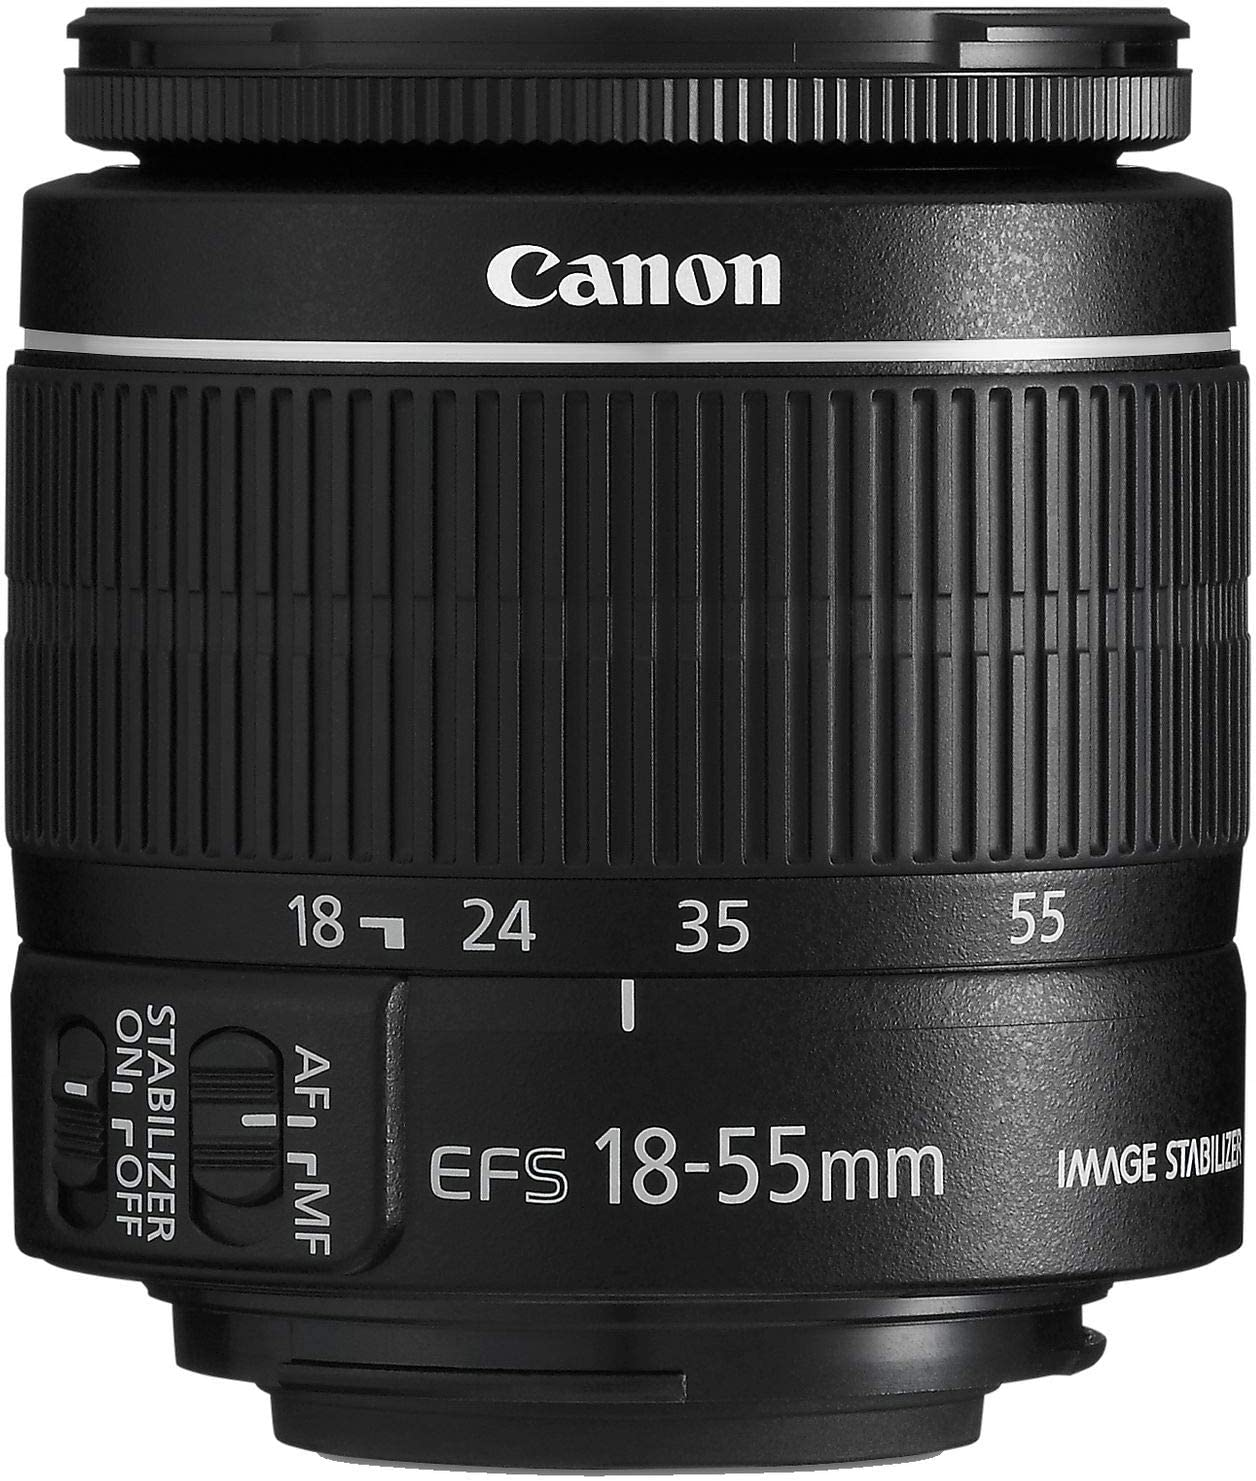 Canon EF-S 18-55mm f/3.5-5.6 IS II: Amazon.es: Electrónica